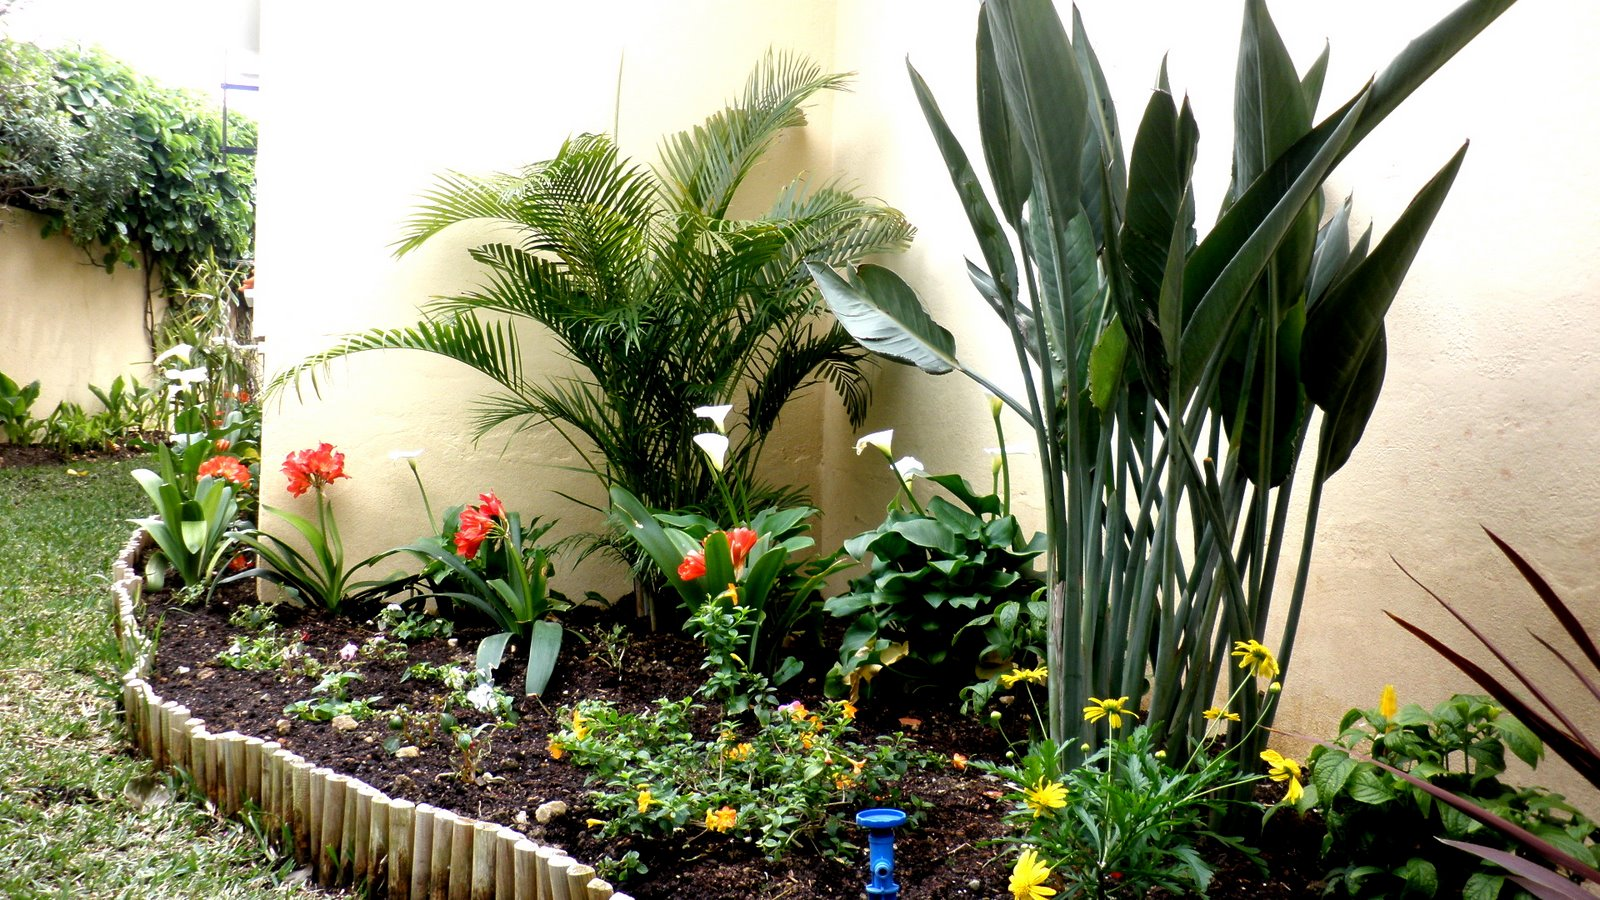 Jardinbio jardin peque o decoracion terminada iii for Como decorar un jardin pequeno